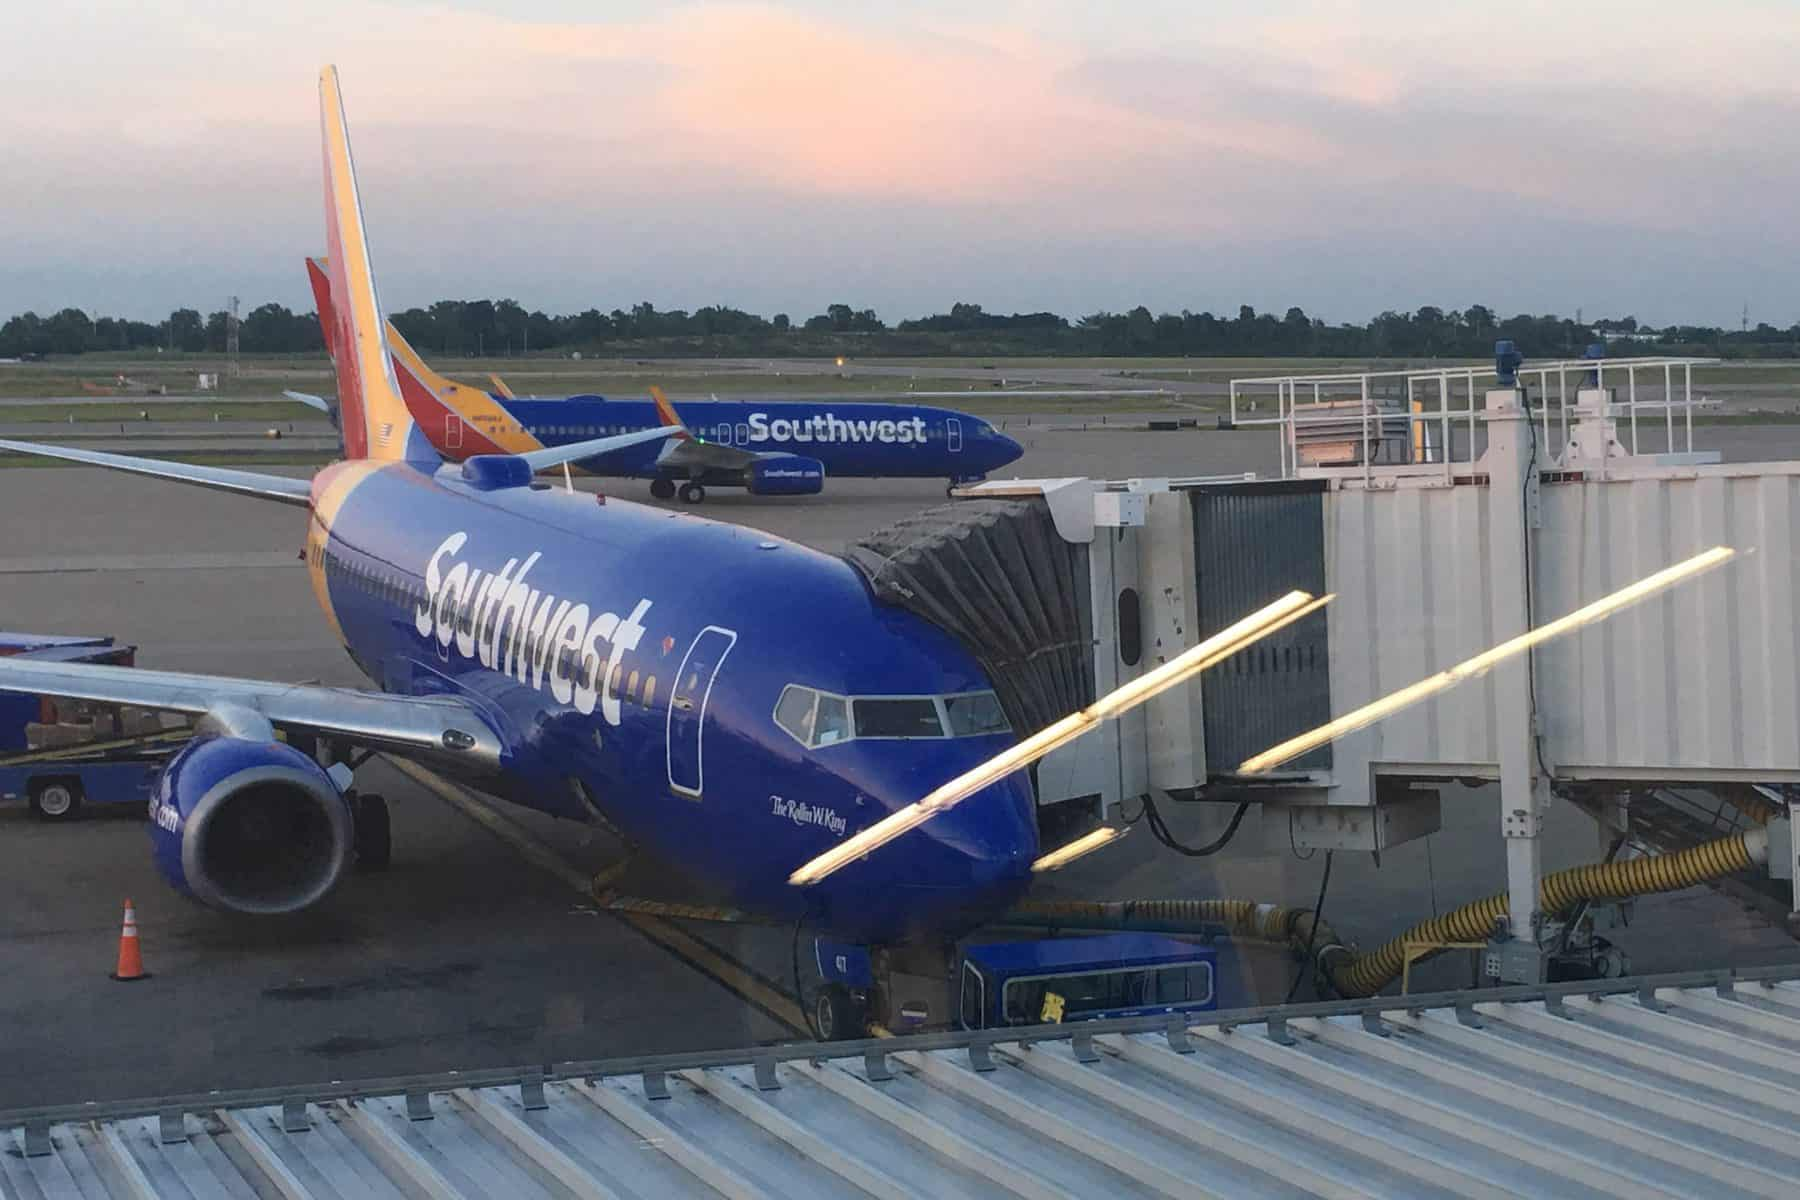 southwest flight at airport